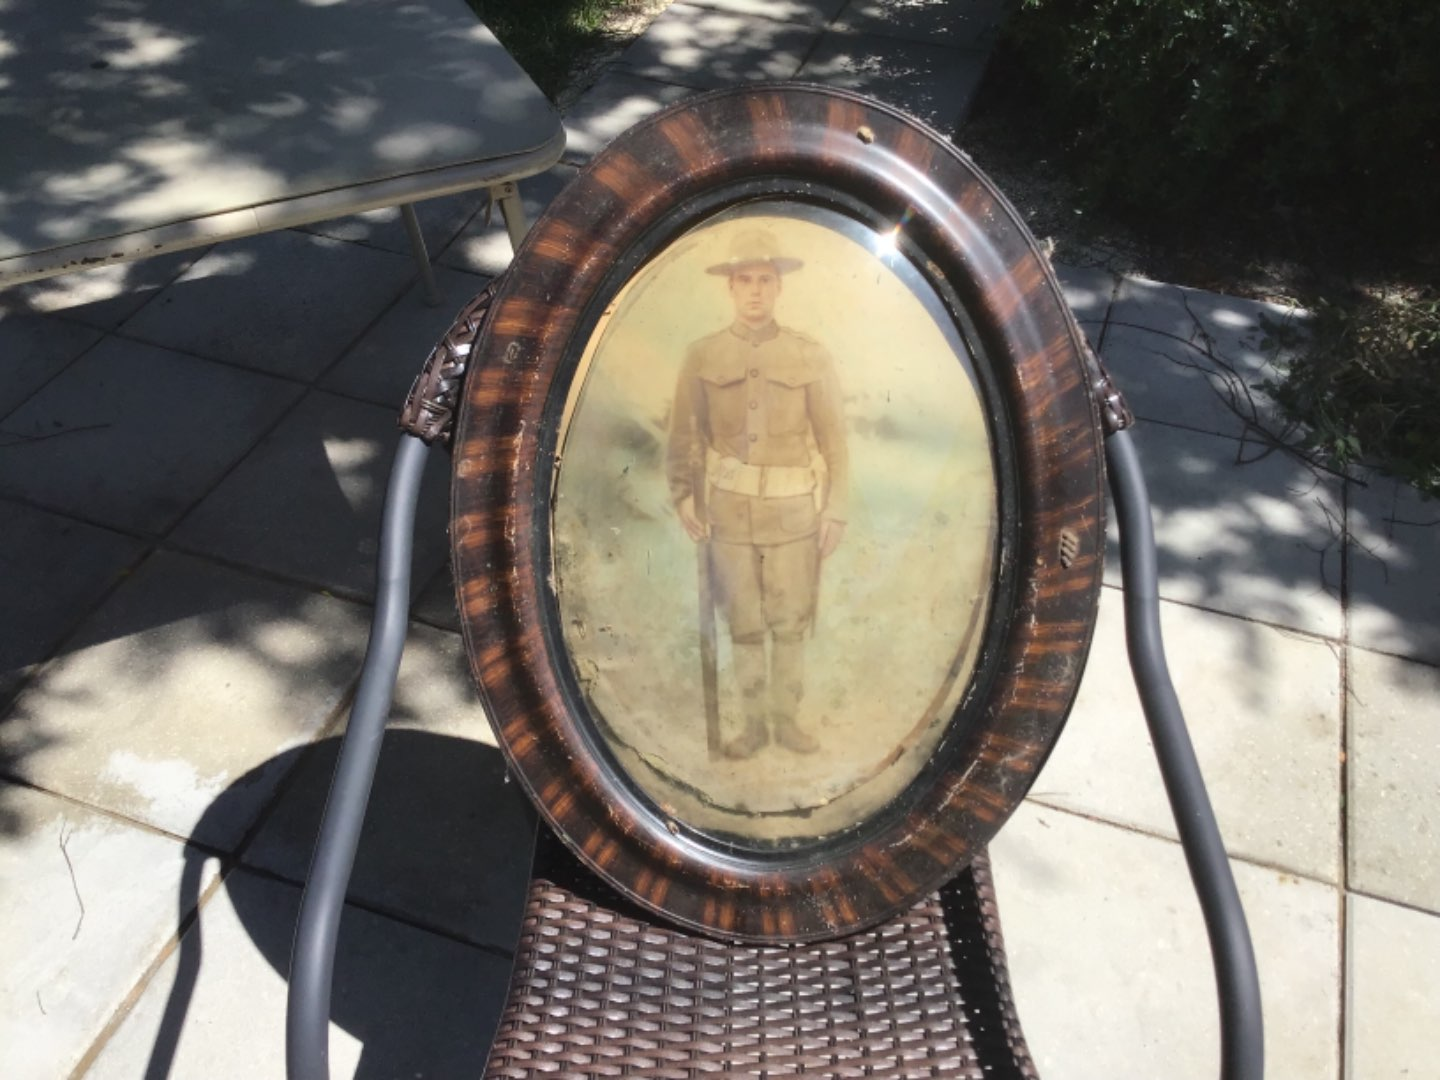 Lot # 44 Very Early (WW 1) Military Soldier - Antique Frame/Convex Glass-See Below